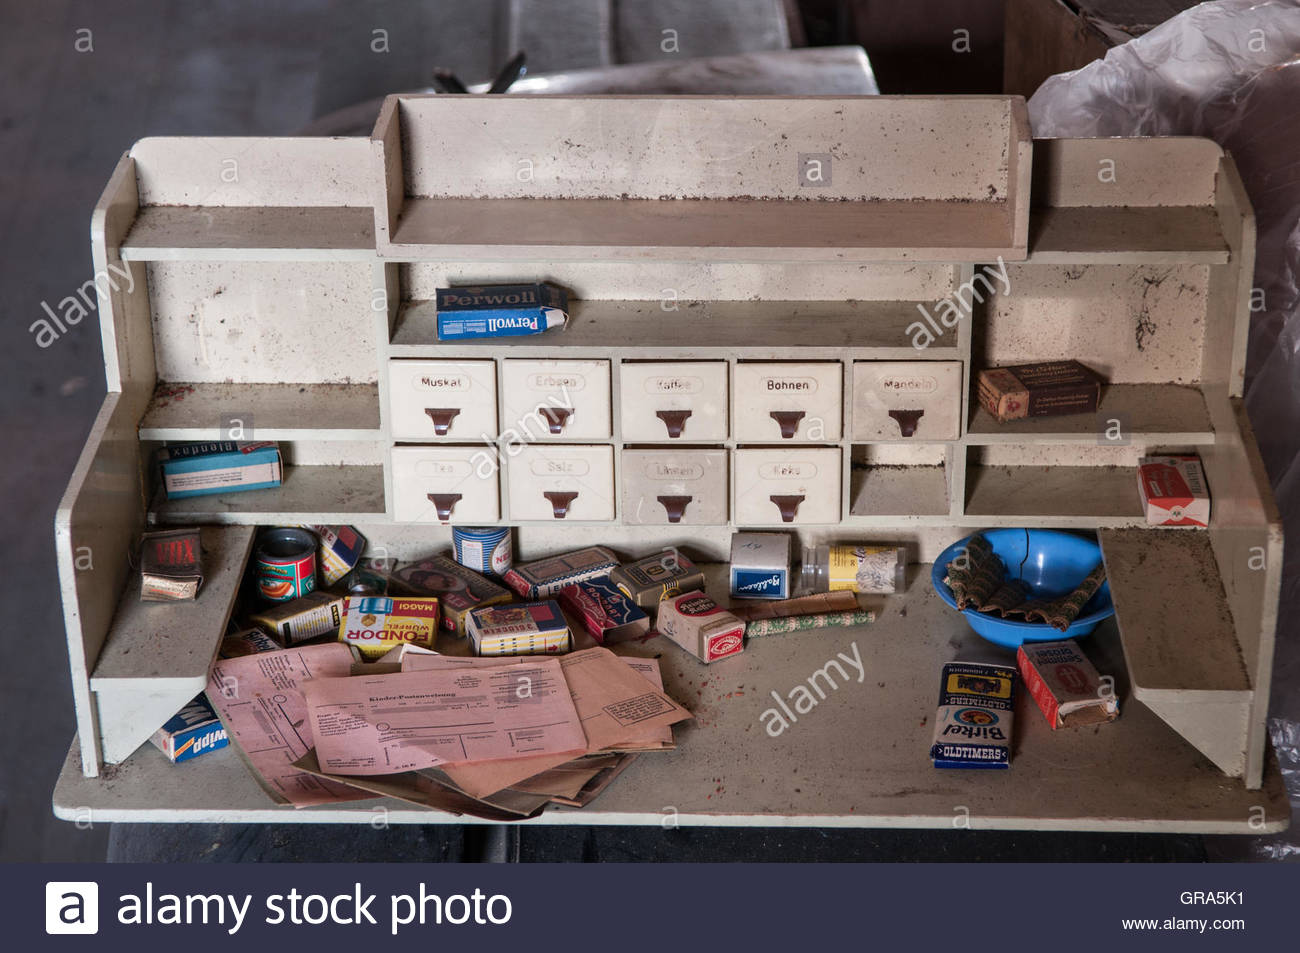 Childrens Shop On An Attic Stock Photo